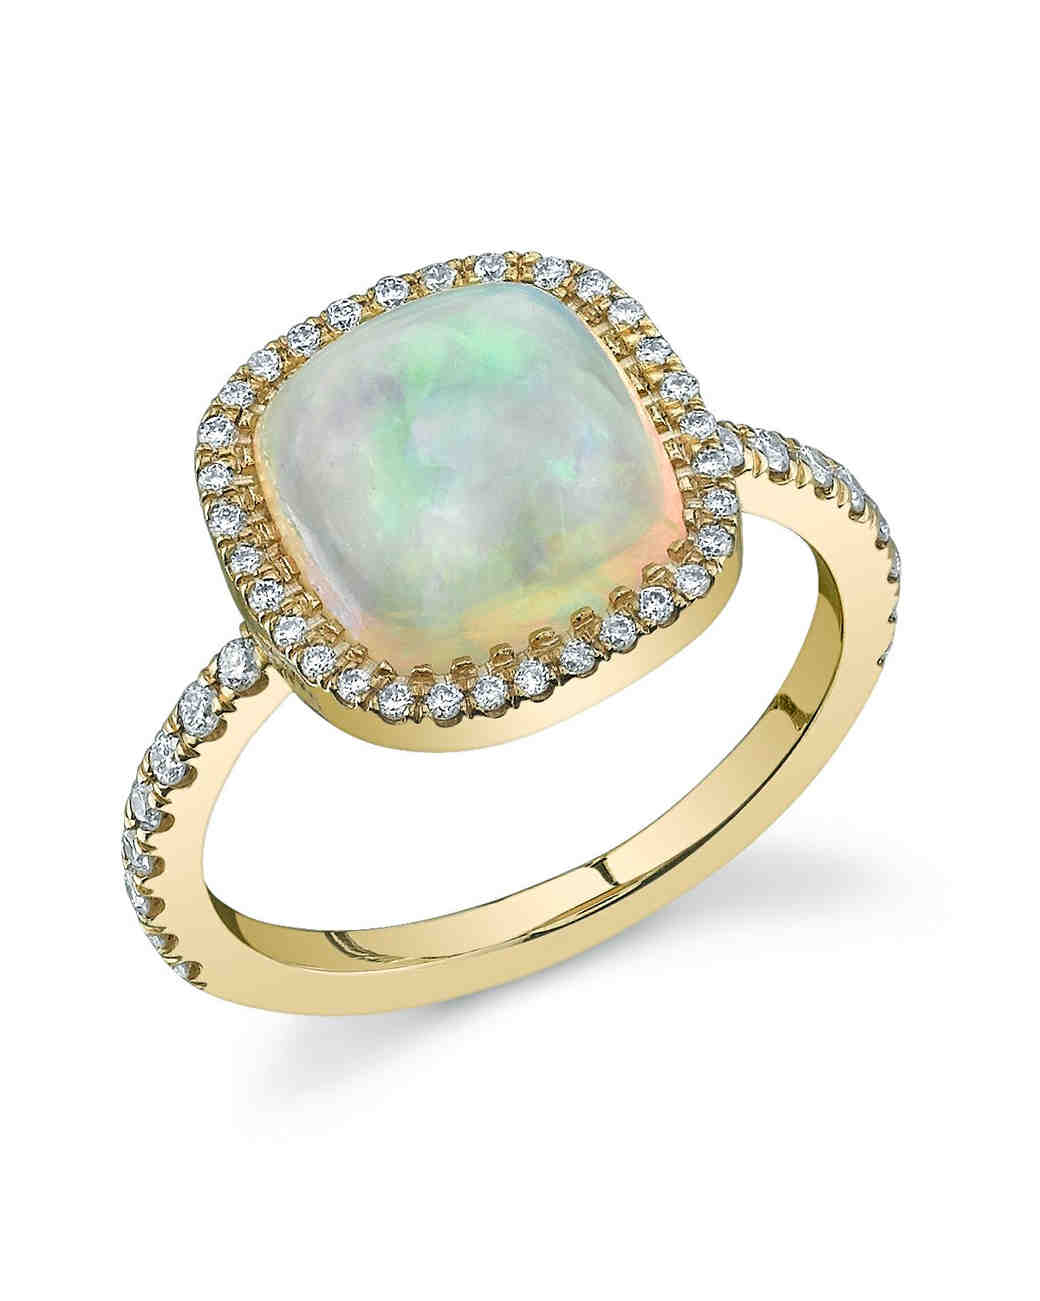 vert stewart weddings engagement colorful love smokey colored topaz pyramid aiche martha jacquie rings we